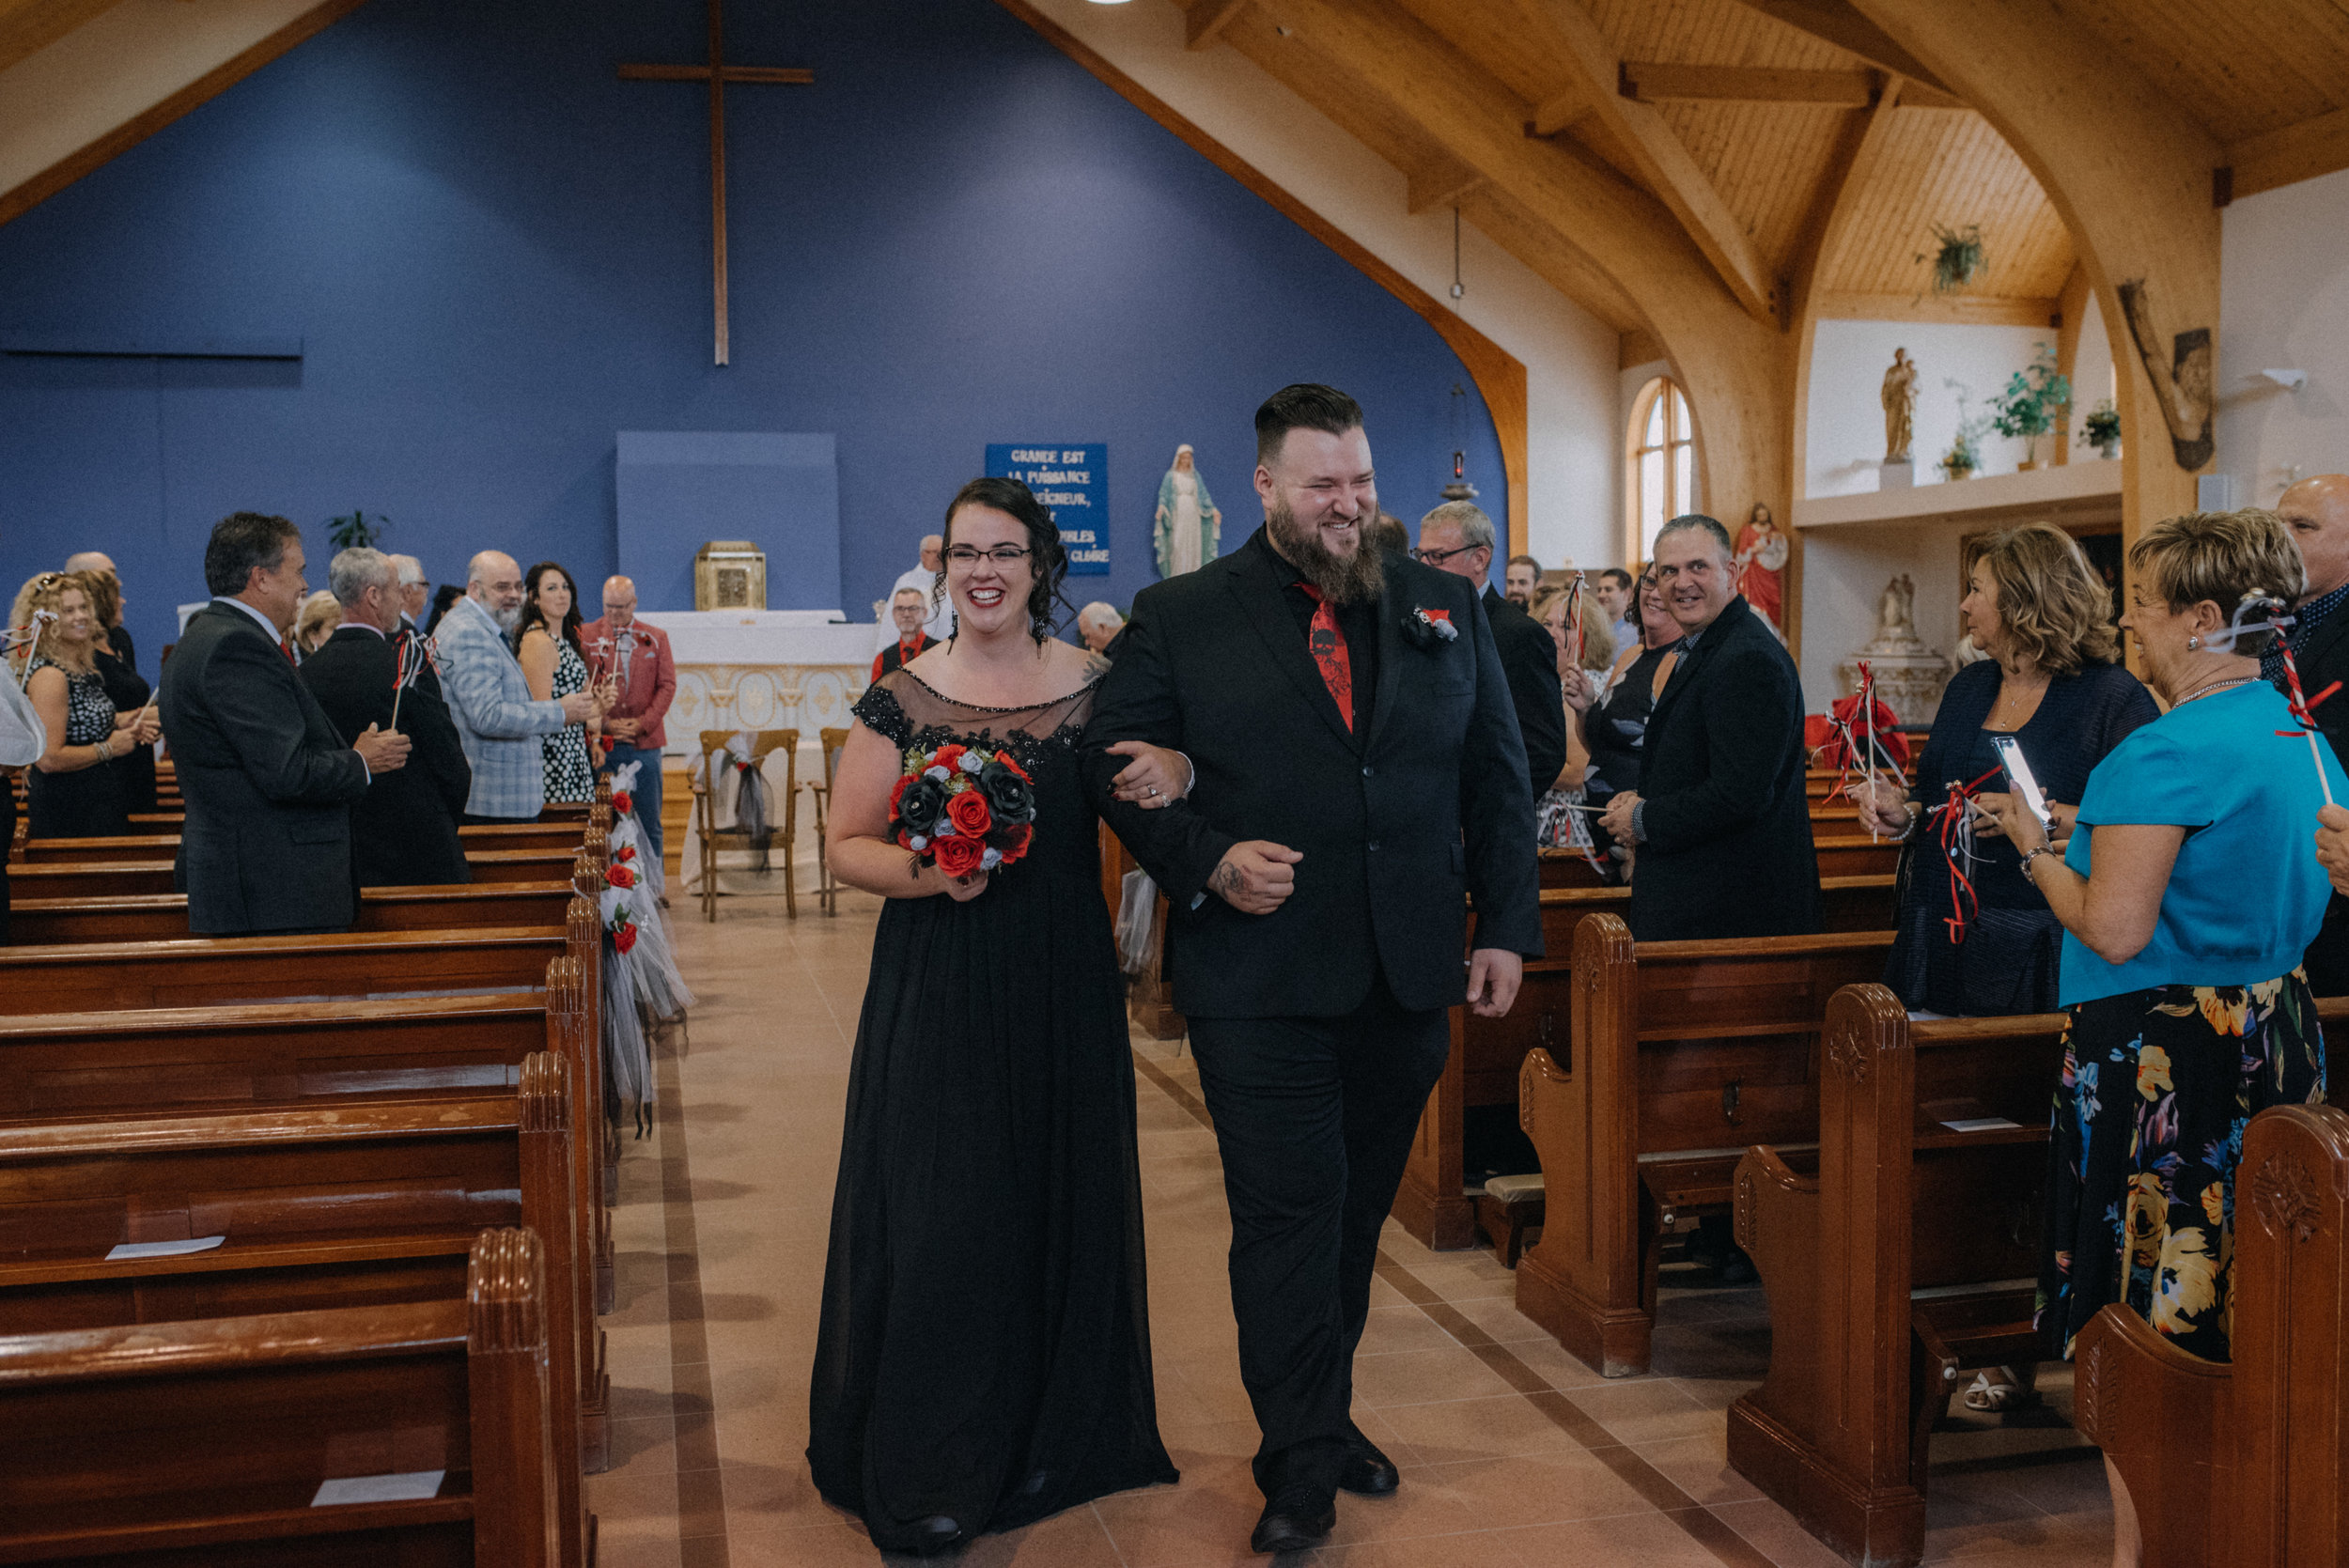 gatineau_photographe_mariage_ottawa_wedding_photographer_photography_candid_natural_moody_documentary_lifestyle (20).JPG